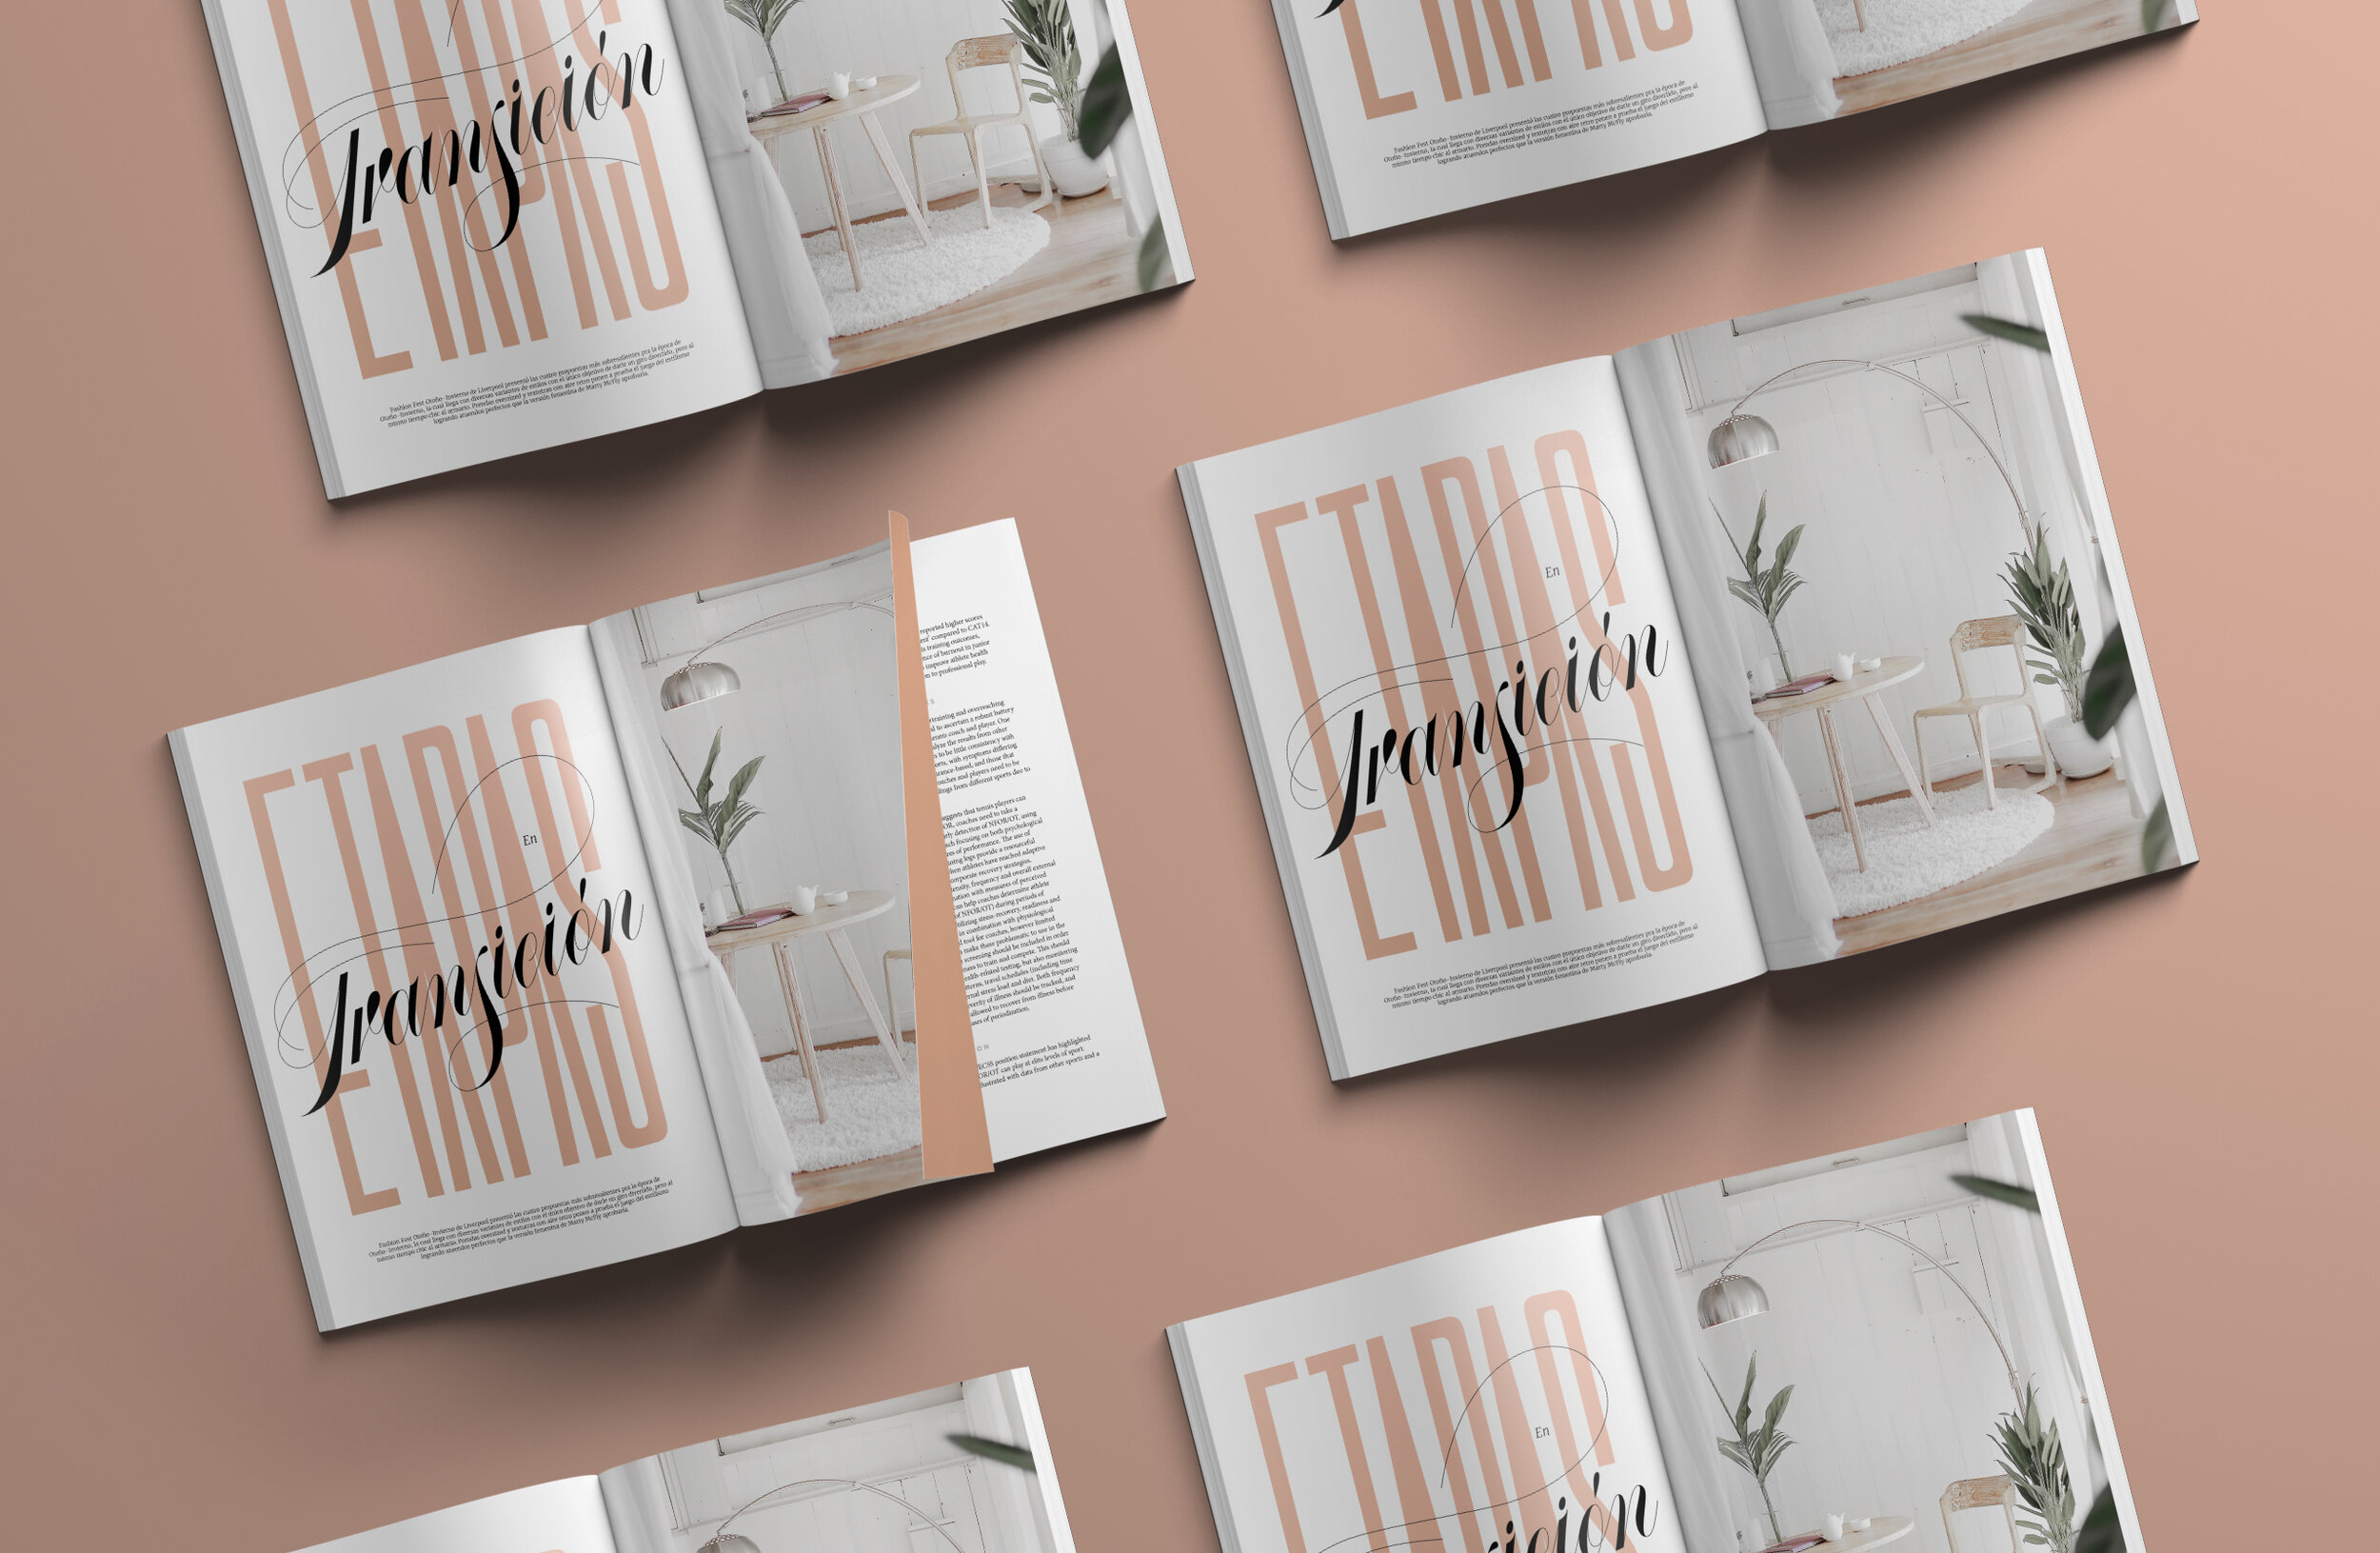 Editorial Lettering_1